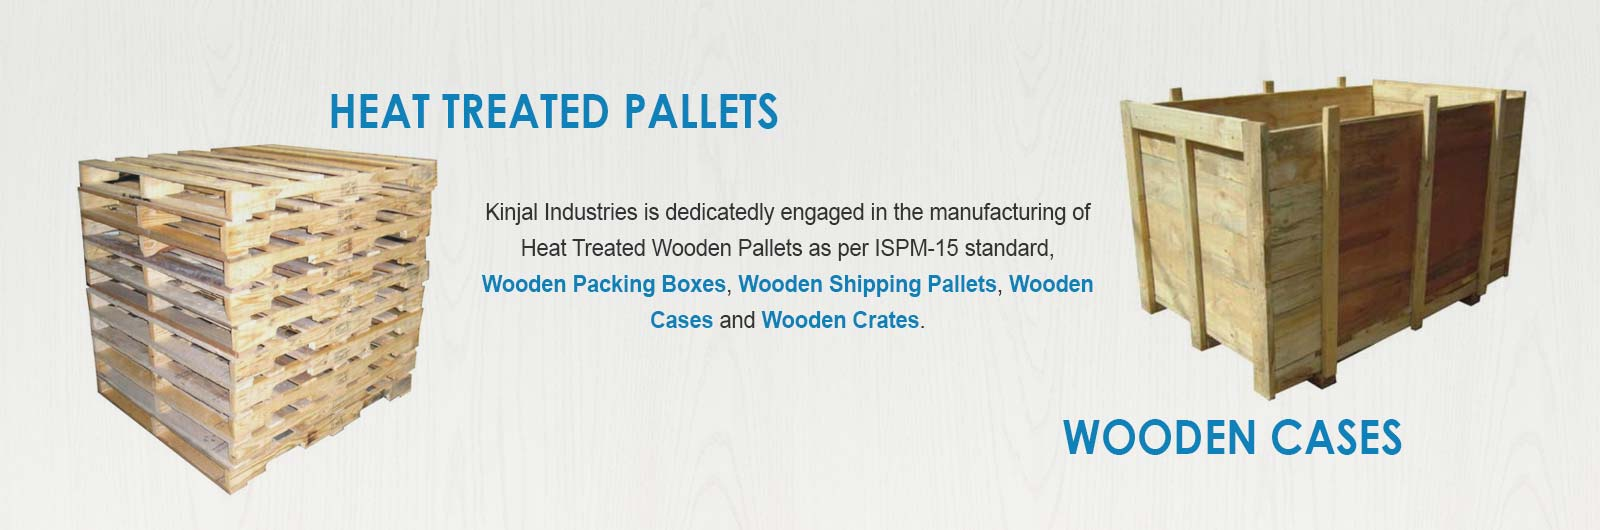 Heat Treated Pallets, Wooden Cases Manufacturers in Bhavnagar